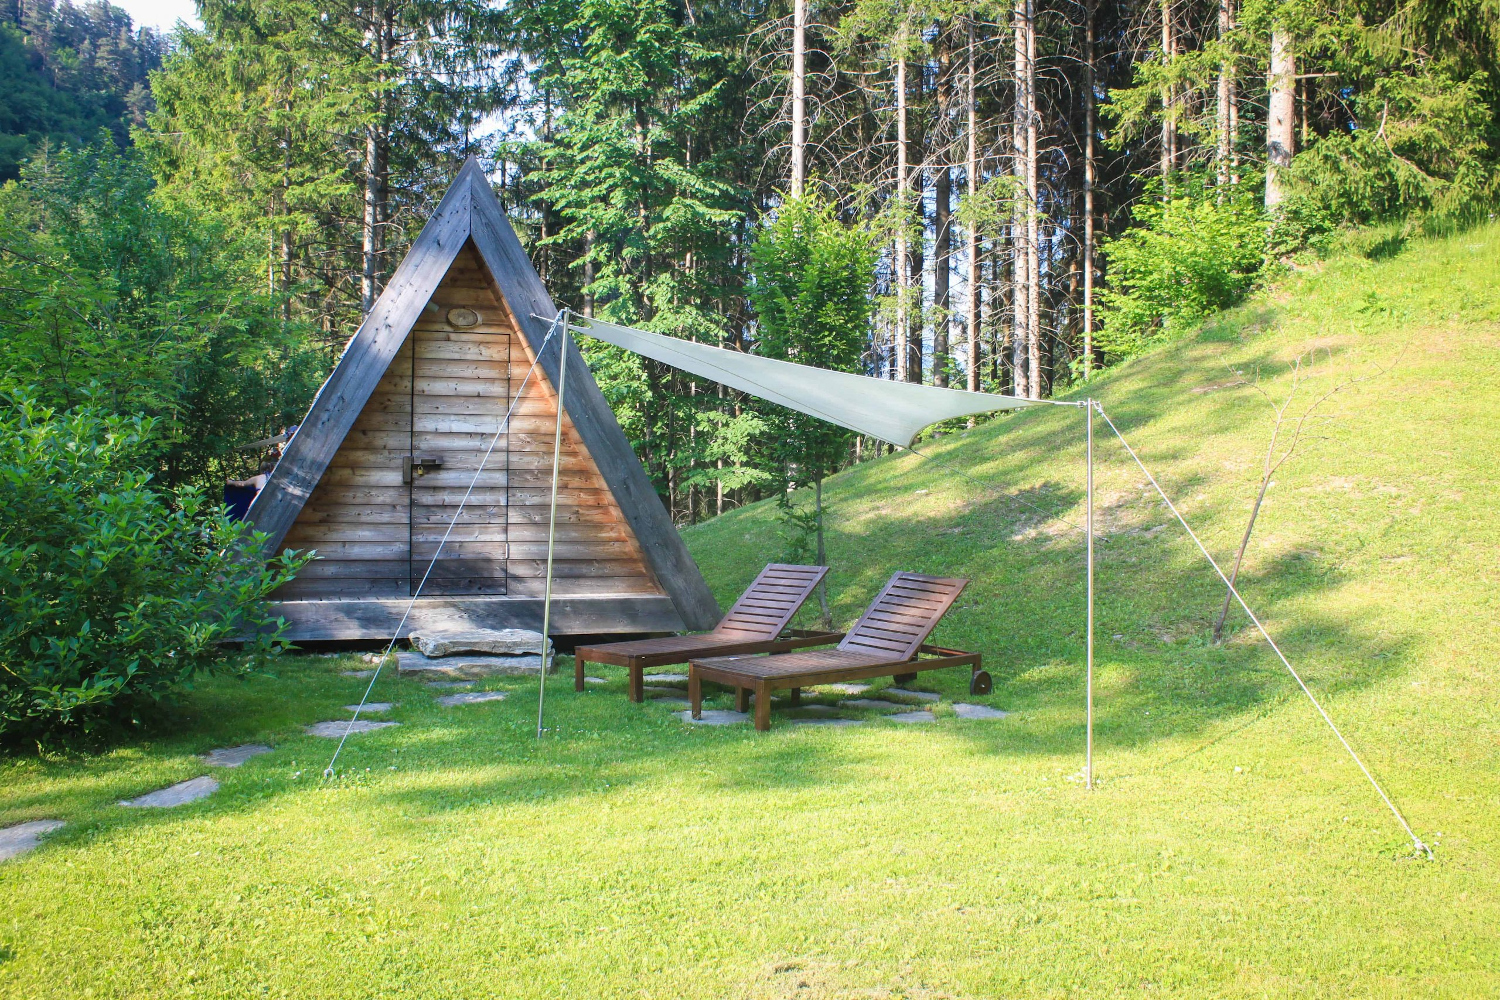 Camping Bled is one of the best campsites in Slovenia